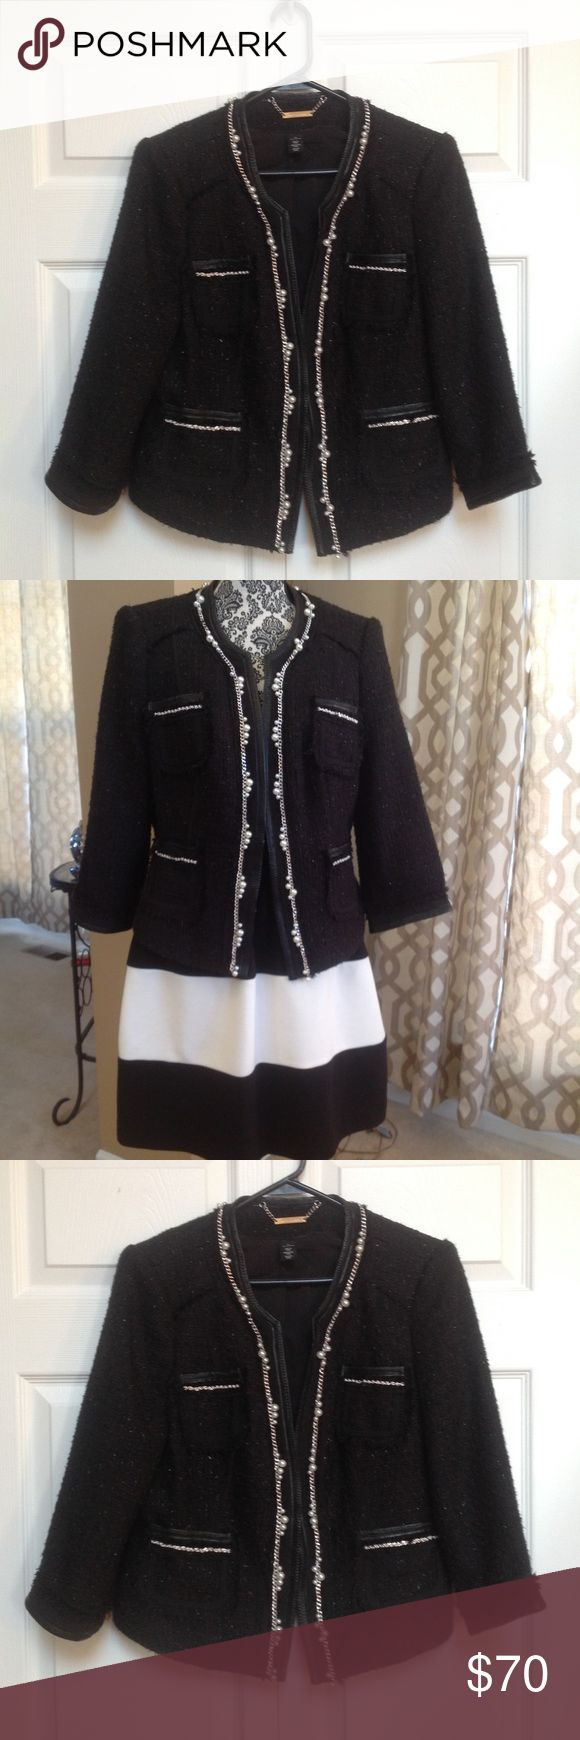 White house black market bejeweled jacket White house Black Market be jeweled short black . Has  hook closure bedazzled with pearls and silver chains with black shimmering fabric White House Black Market Jackets & Coats Blazers